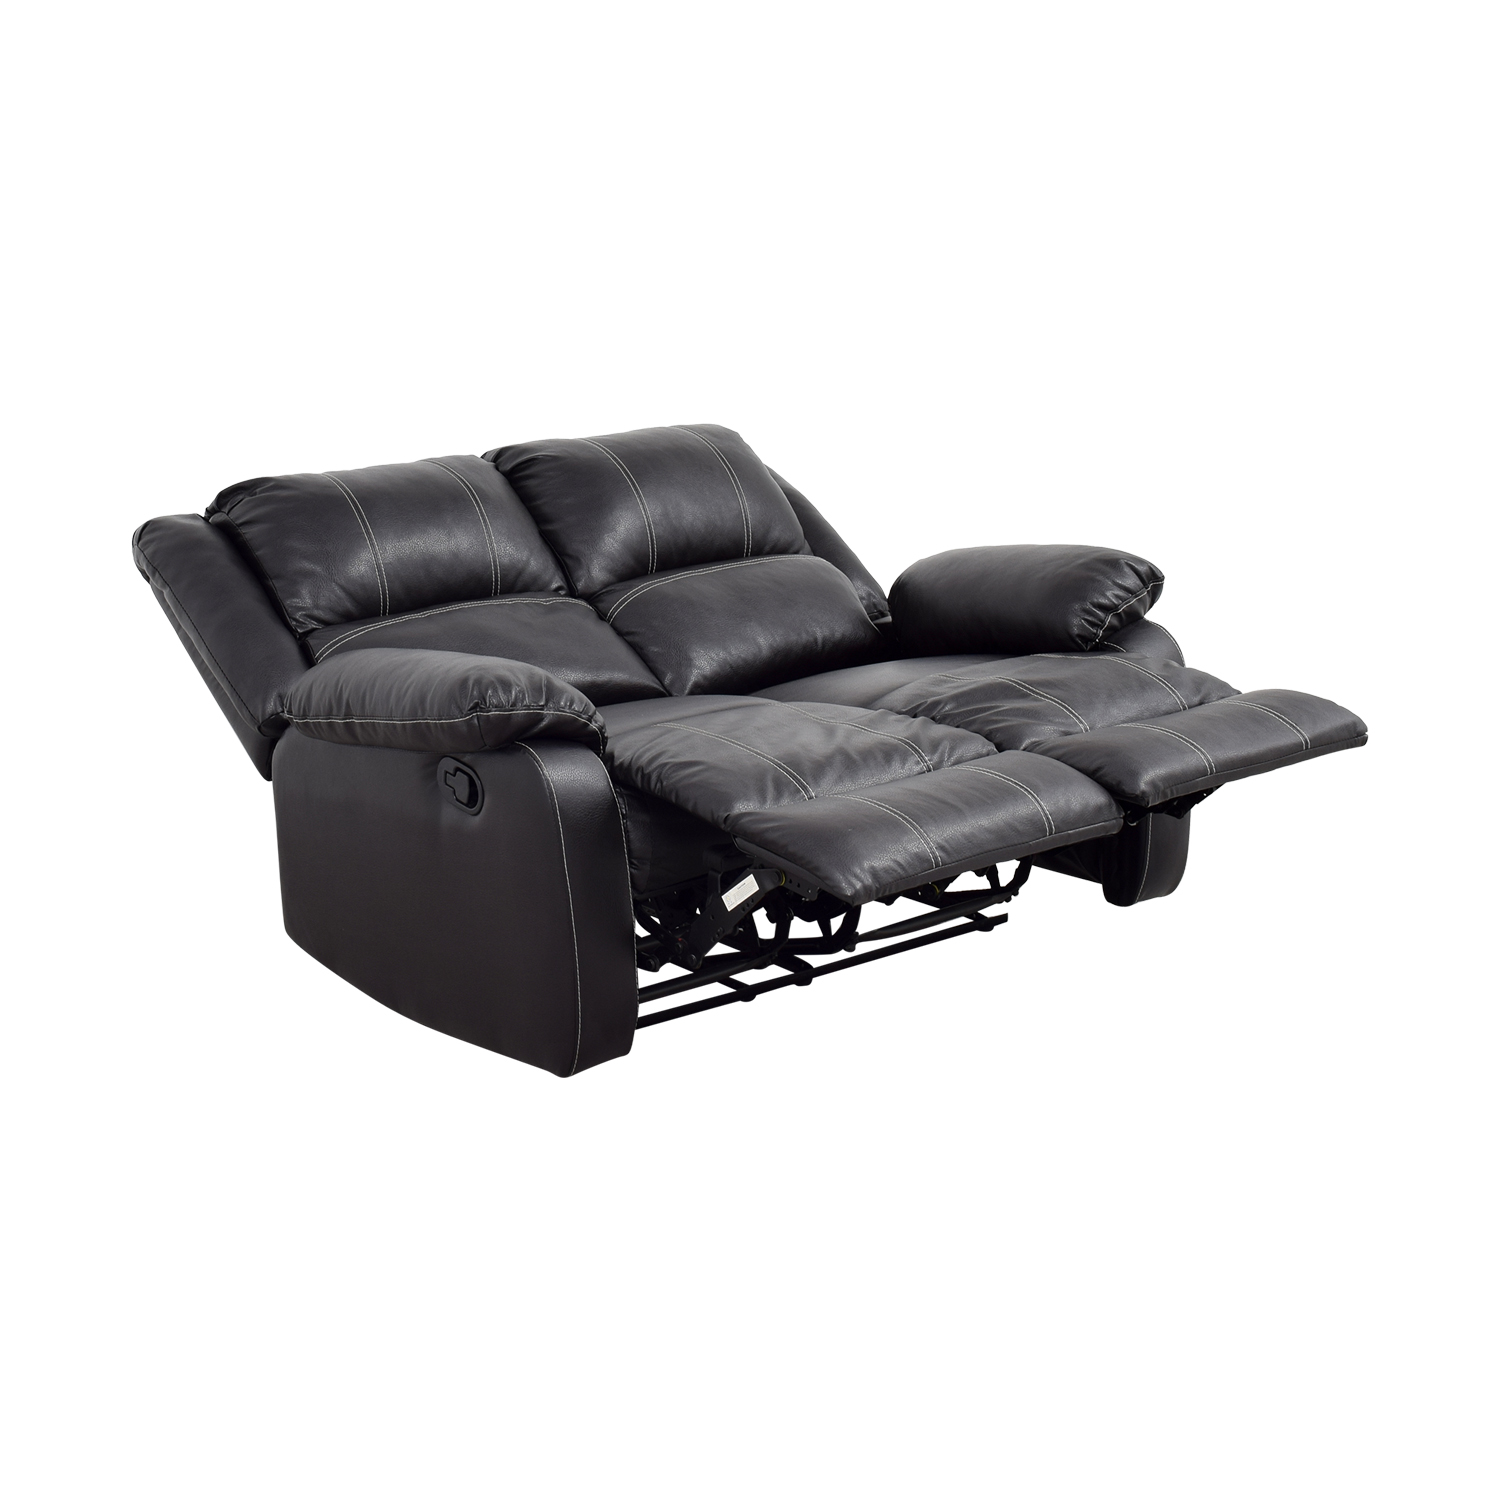 Acme Acme Black Leather Reclining Loveseat used